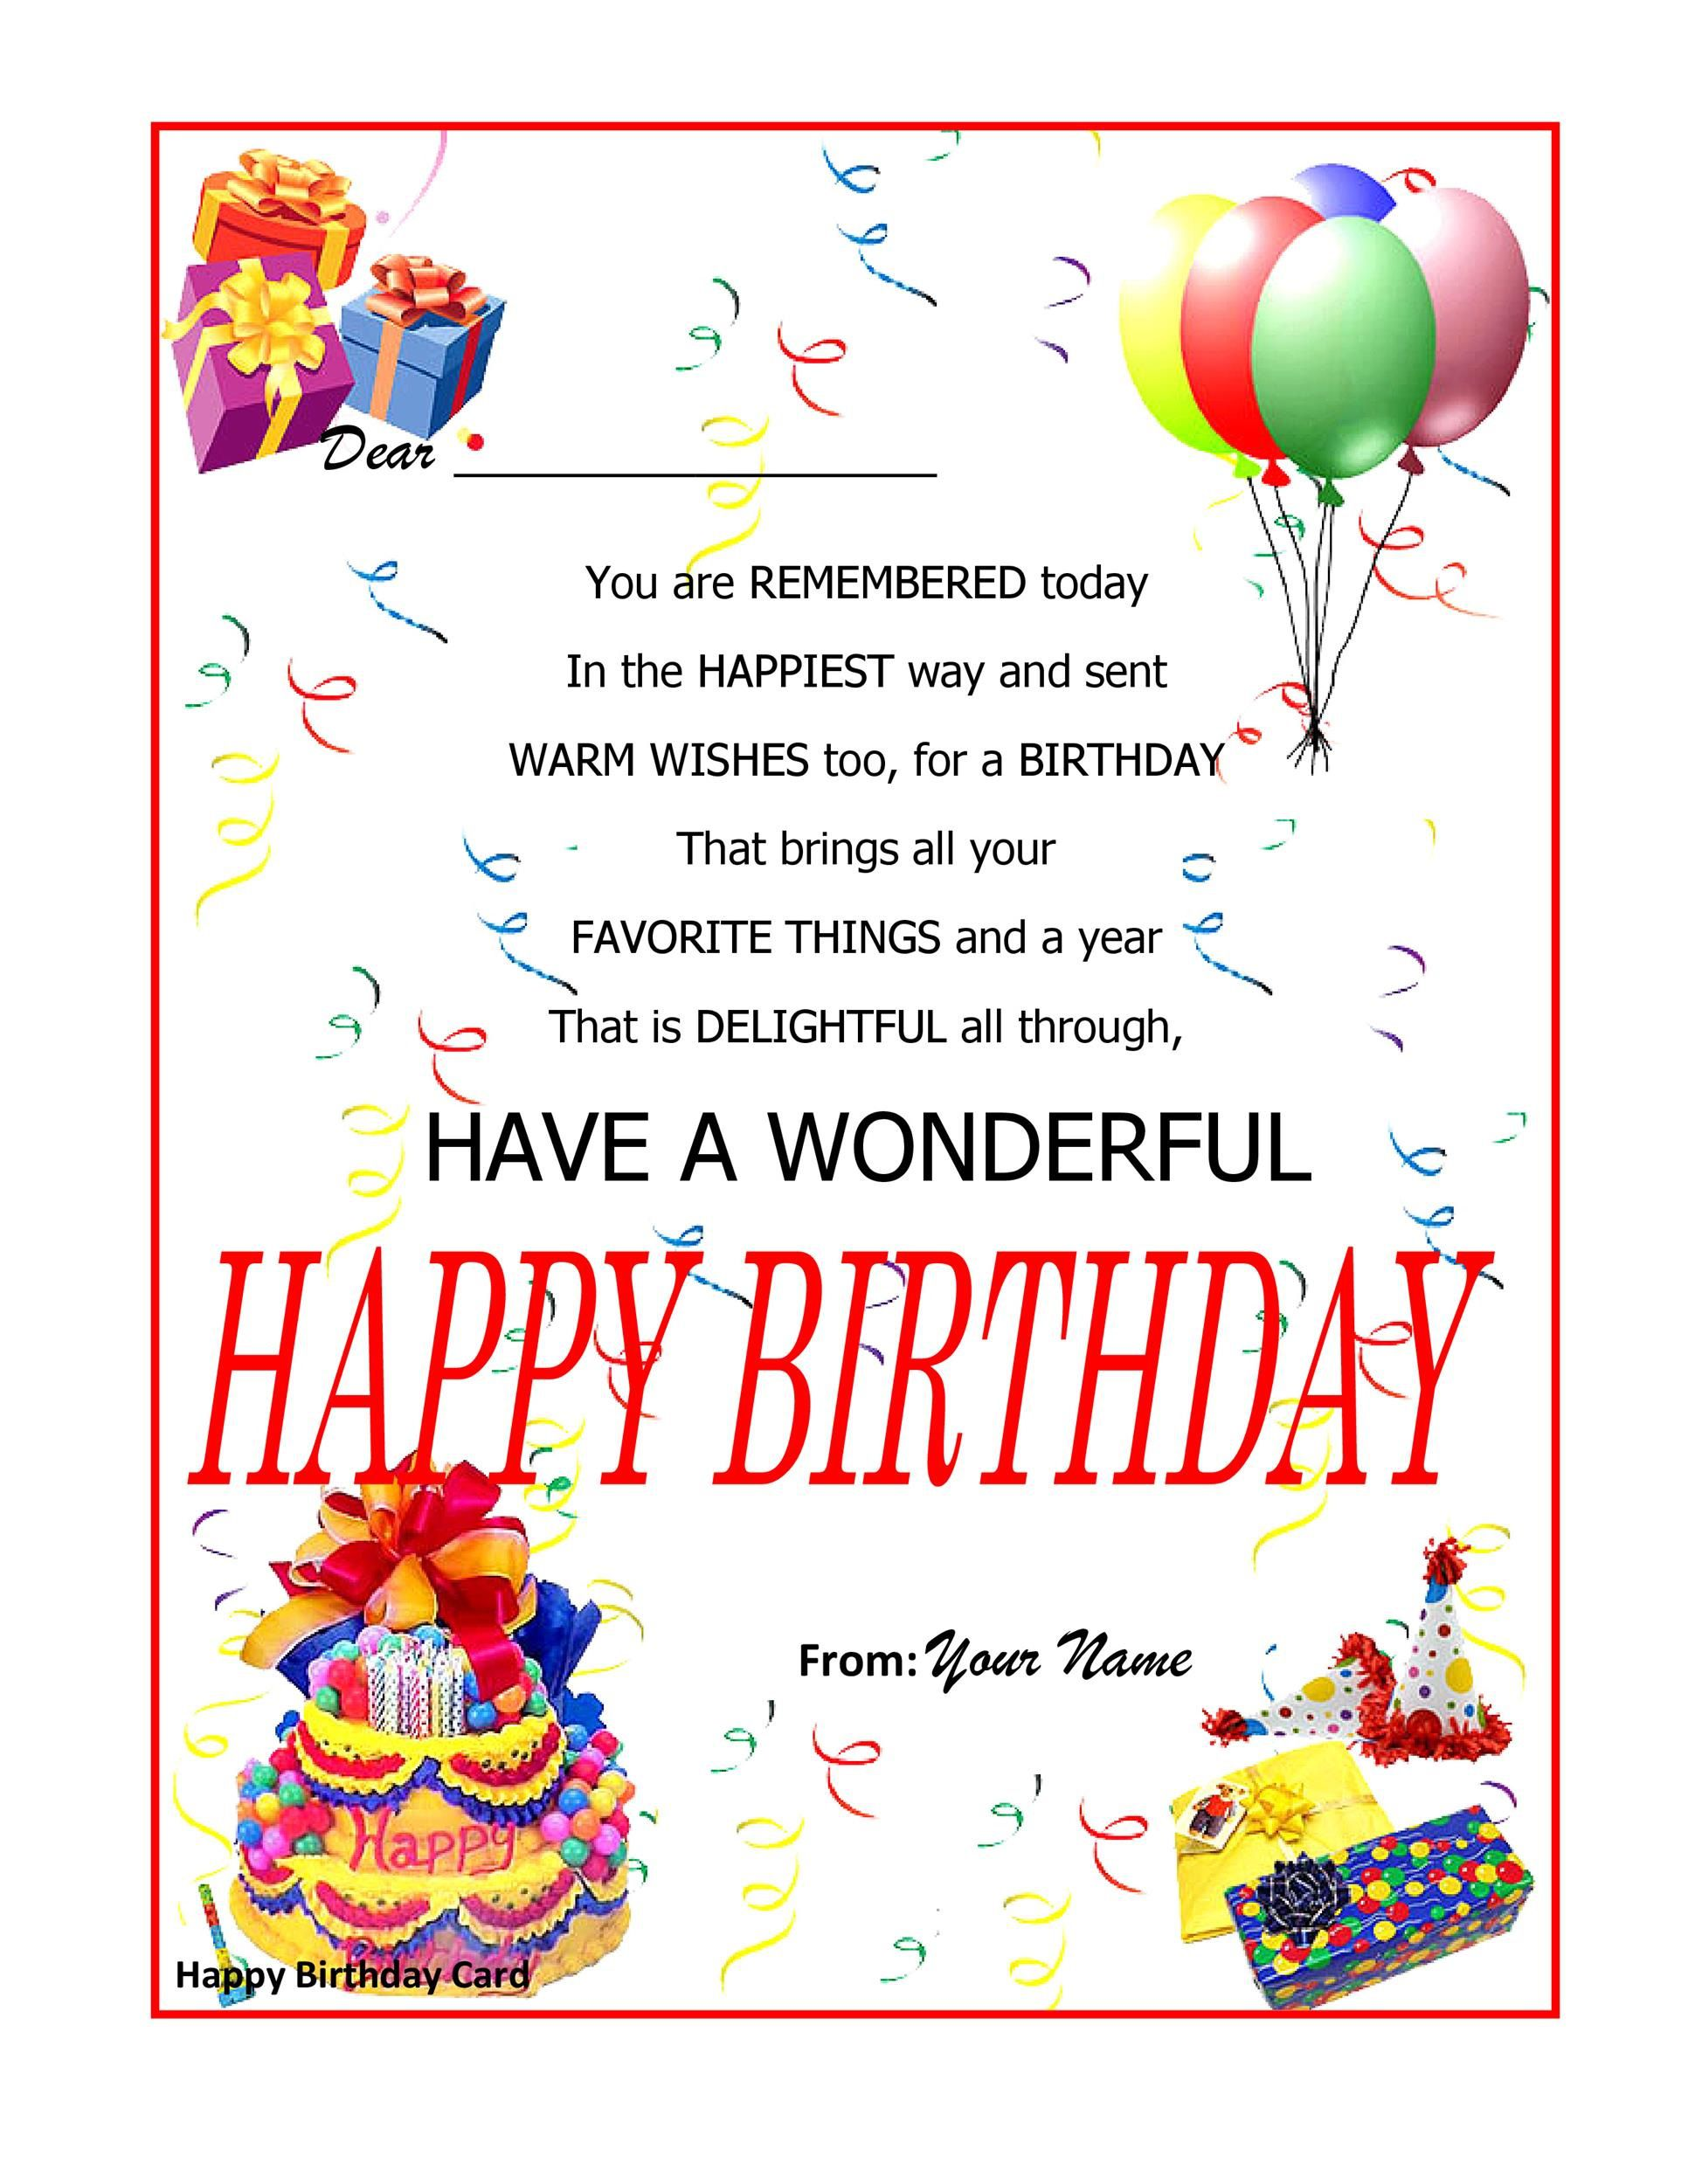 003 Beautiful Birthday Card Template Word Example  Blank Greeting Microsoft 2010Full